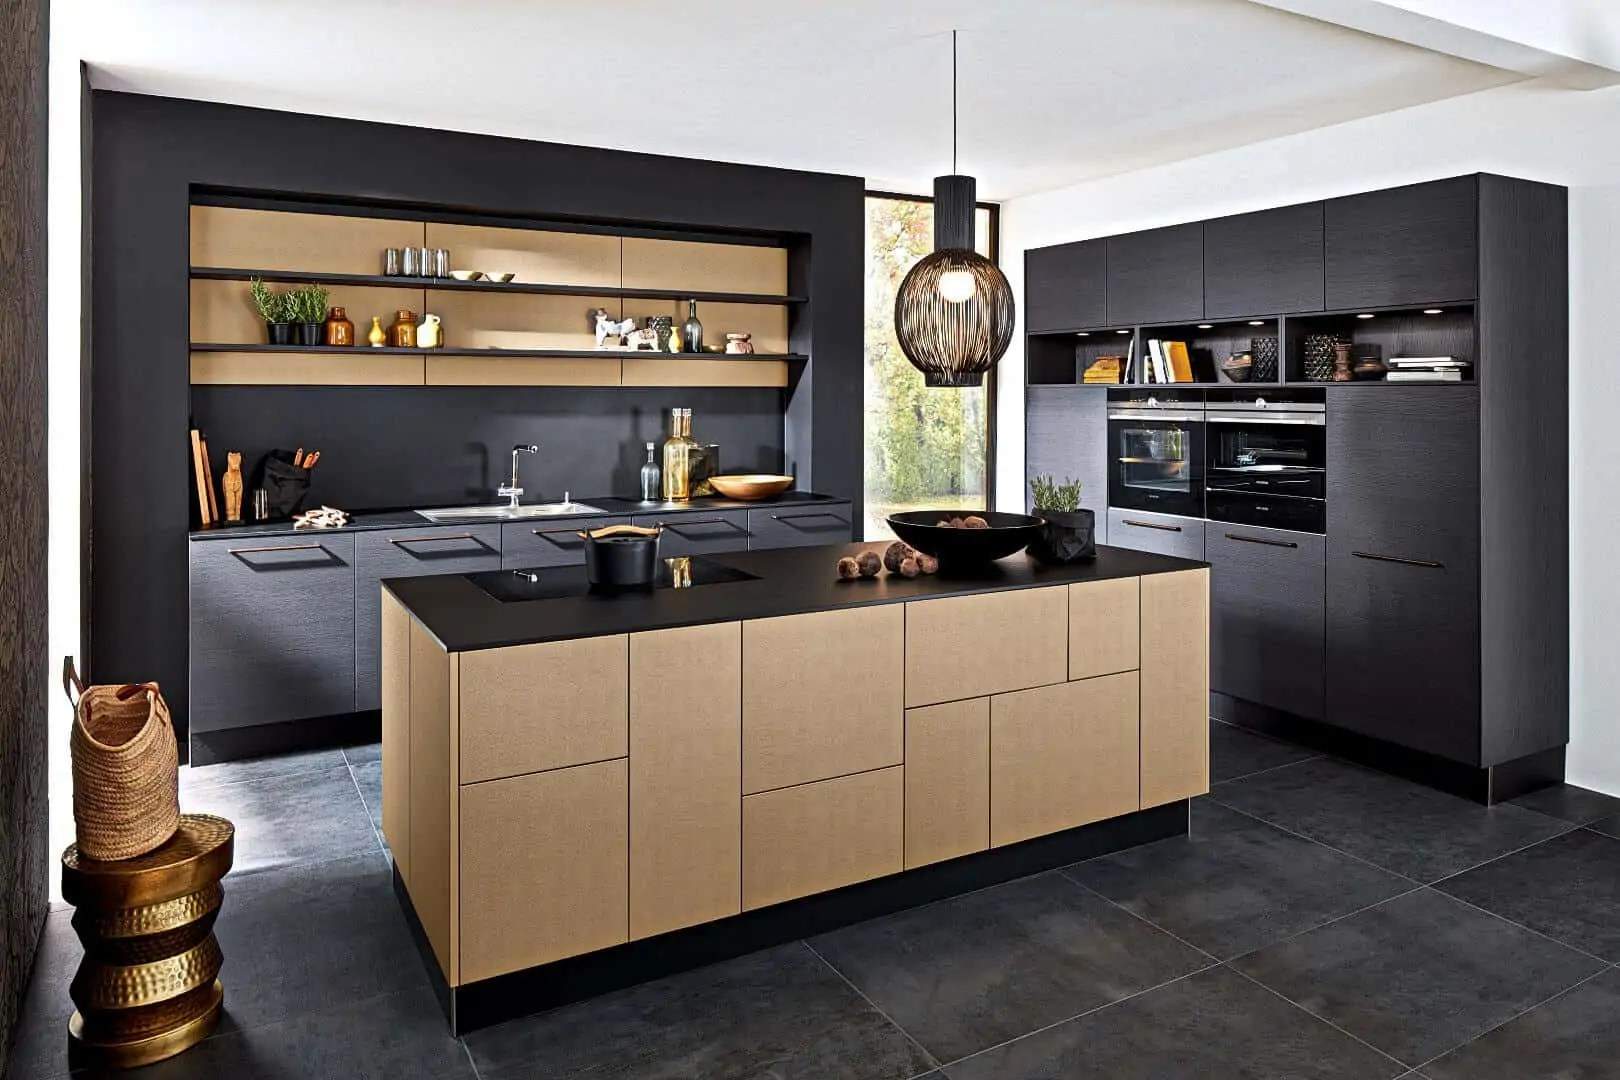 Nolte Küche Windsor Lack Magnolia Nolte Kche Feel Kitchen Fronts Nolte Kitchens Cuisine Nolte